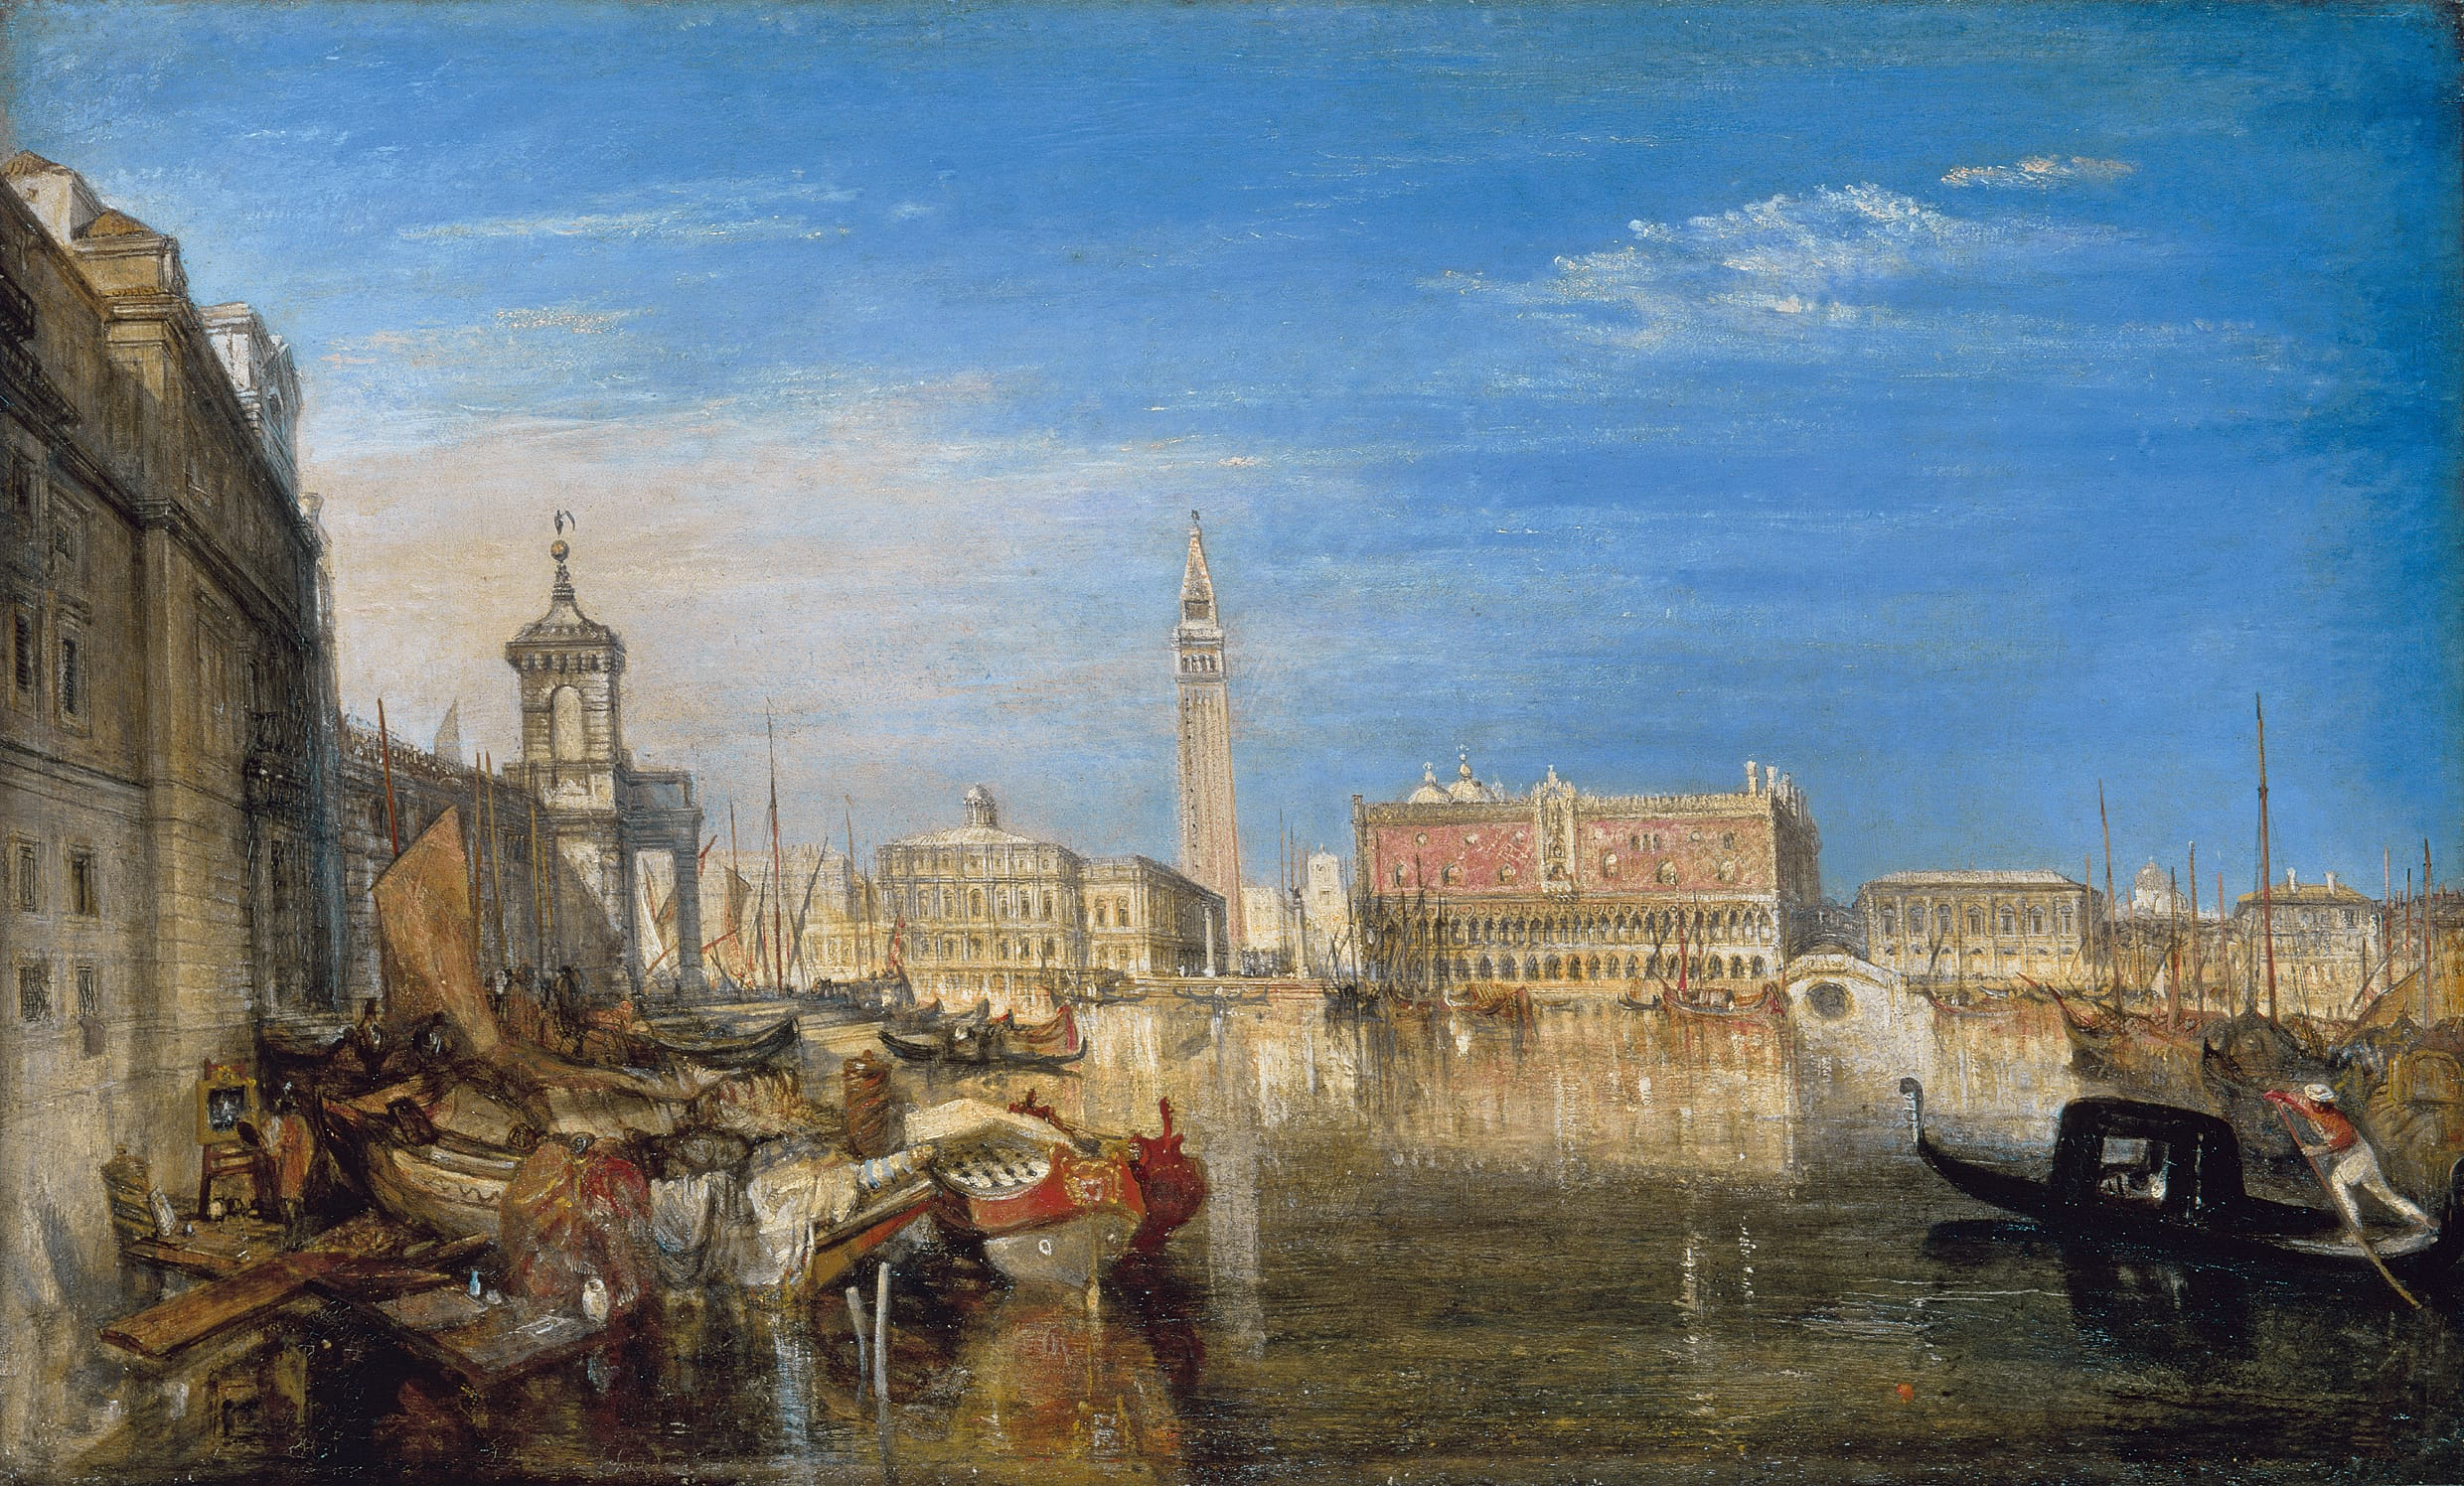 J.M.W. Turner,   Bridge of Sighs: Ducal Palace and Custom House, Venice: Canaletti  [sic] Painting,  by J.M.W. Turner. 1833. Oil on canvas 51.1 × 81.6 cm.    (Tate Britain, London).